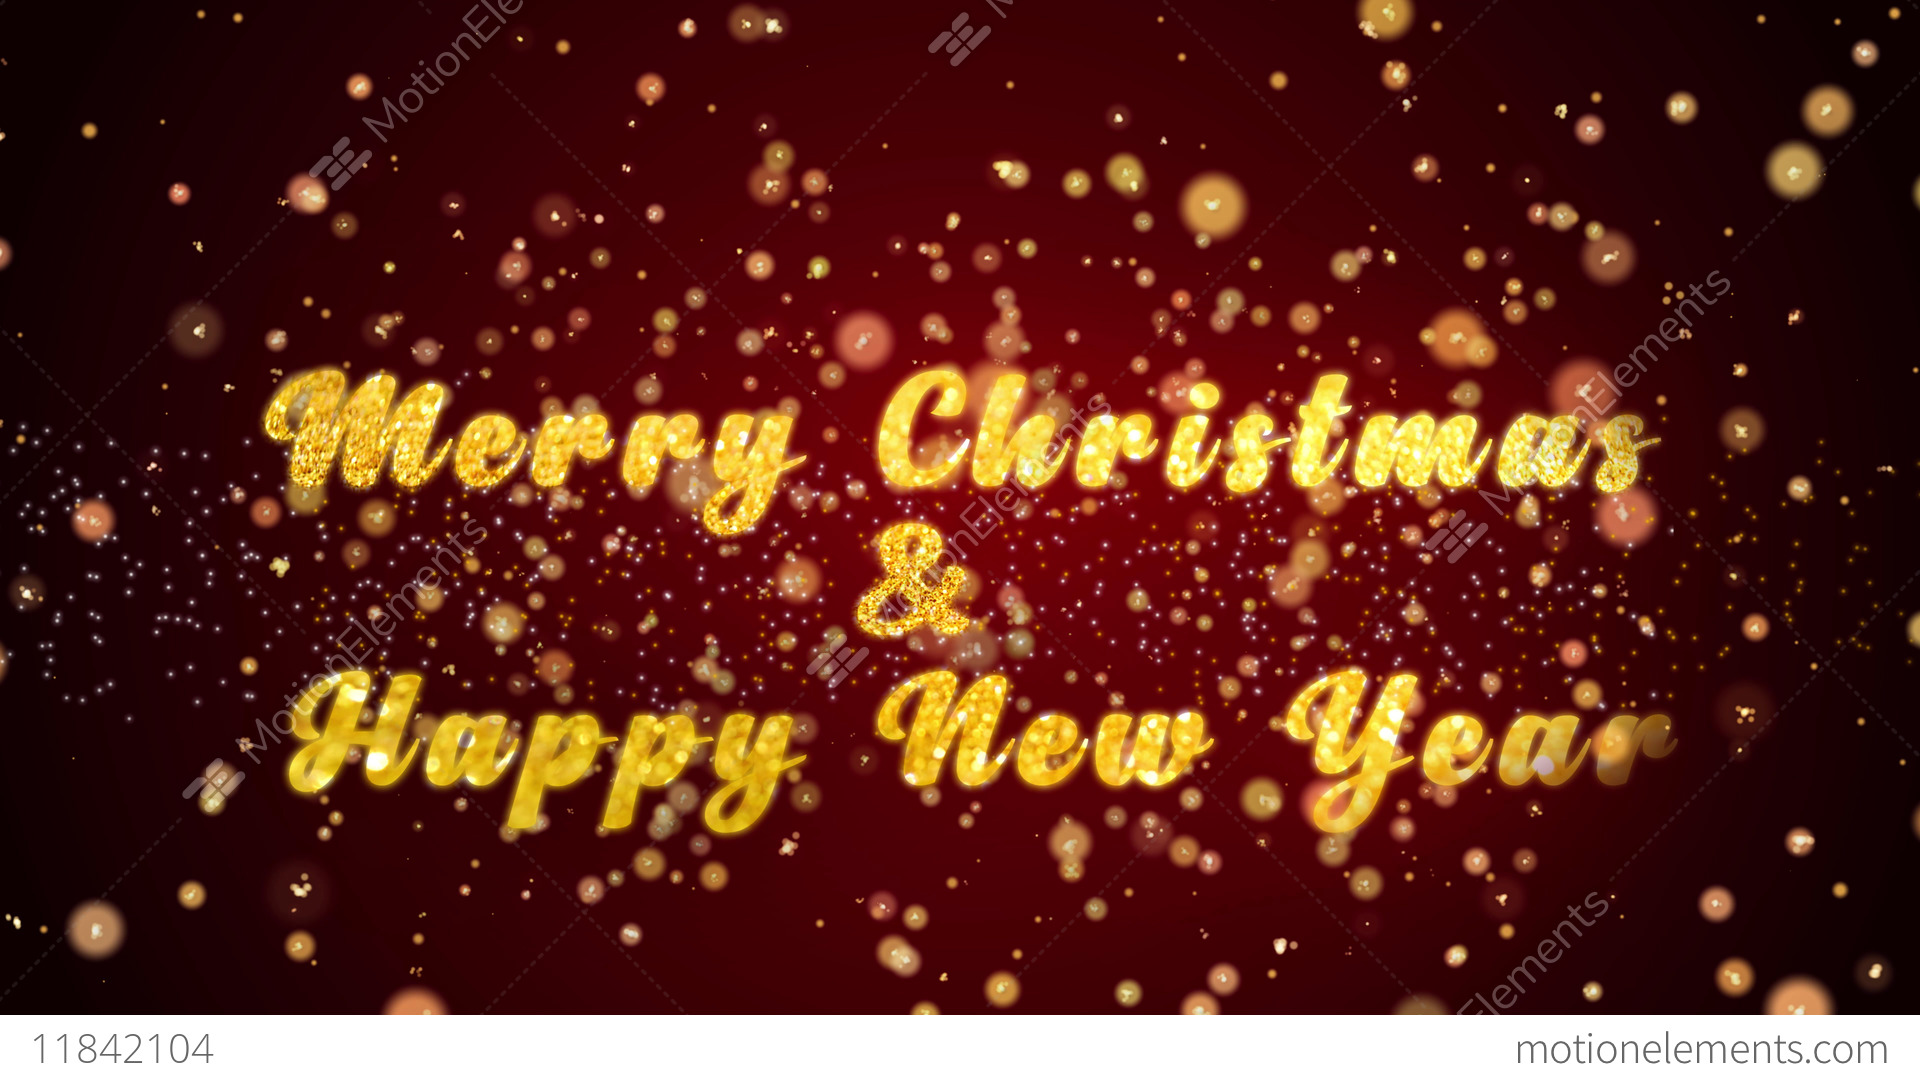 merry christmas happy new year greeting card text shiny stock video footage